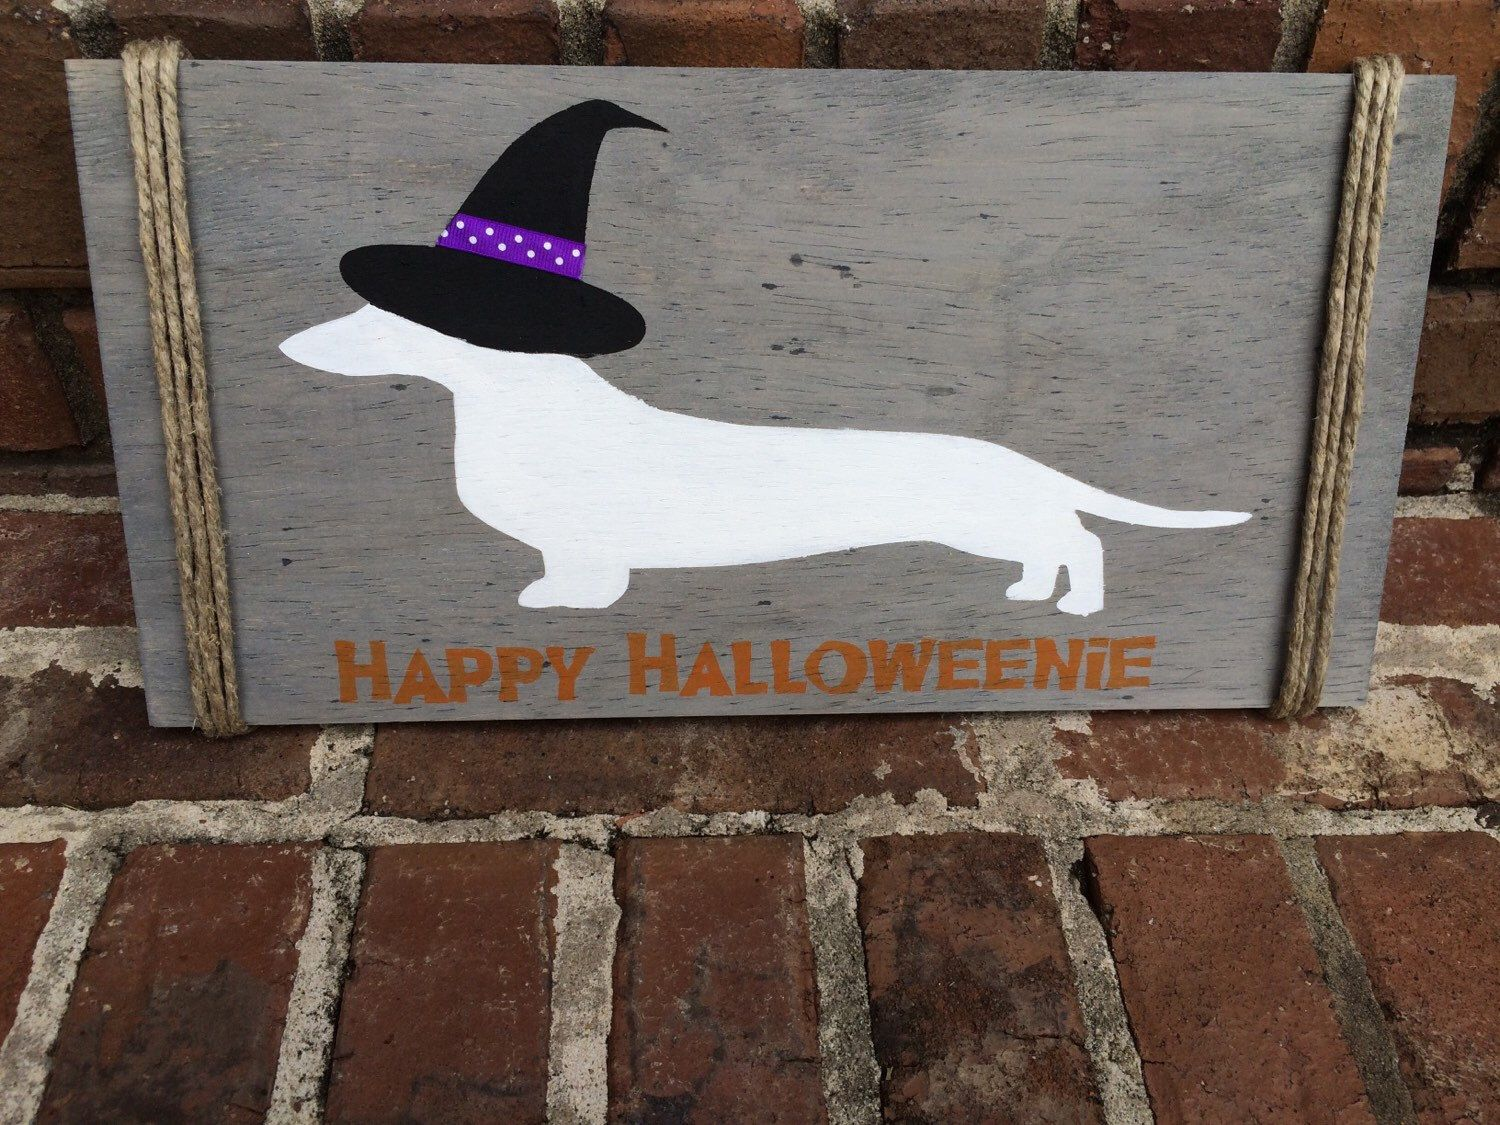 Dachshund Home Decor Happy Halloween Dachshund Home Decor Happy Halloweenie Dachshund